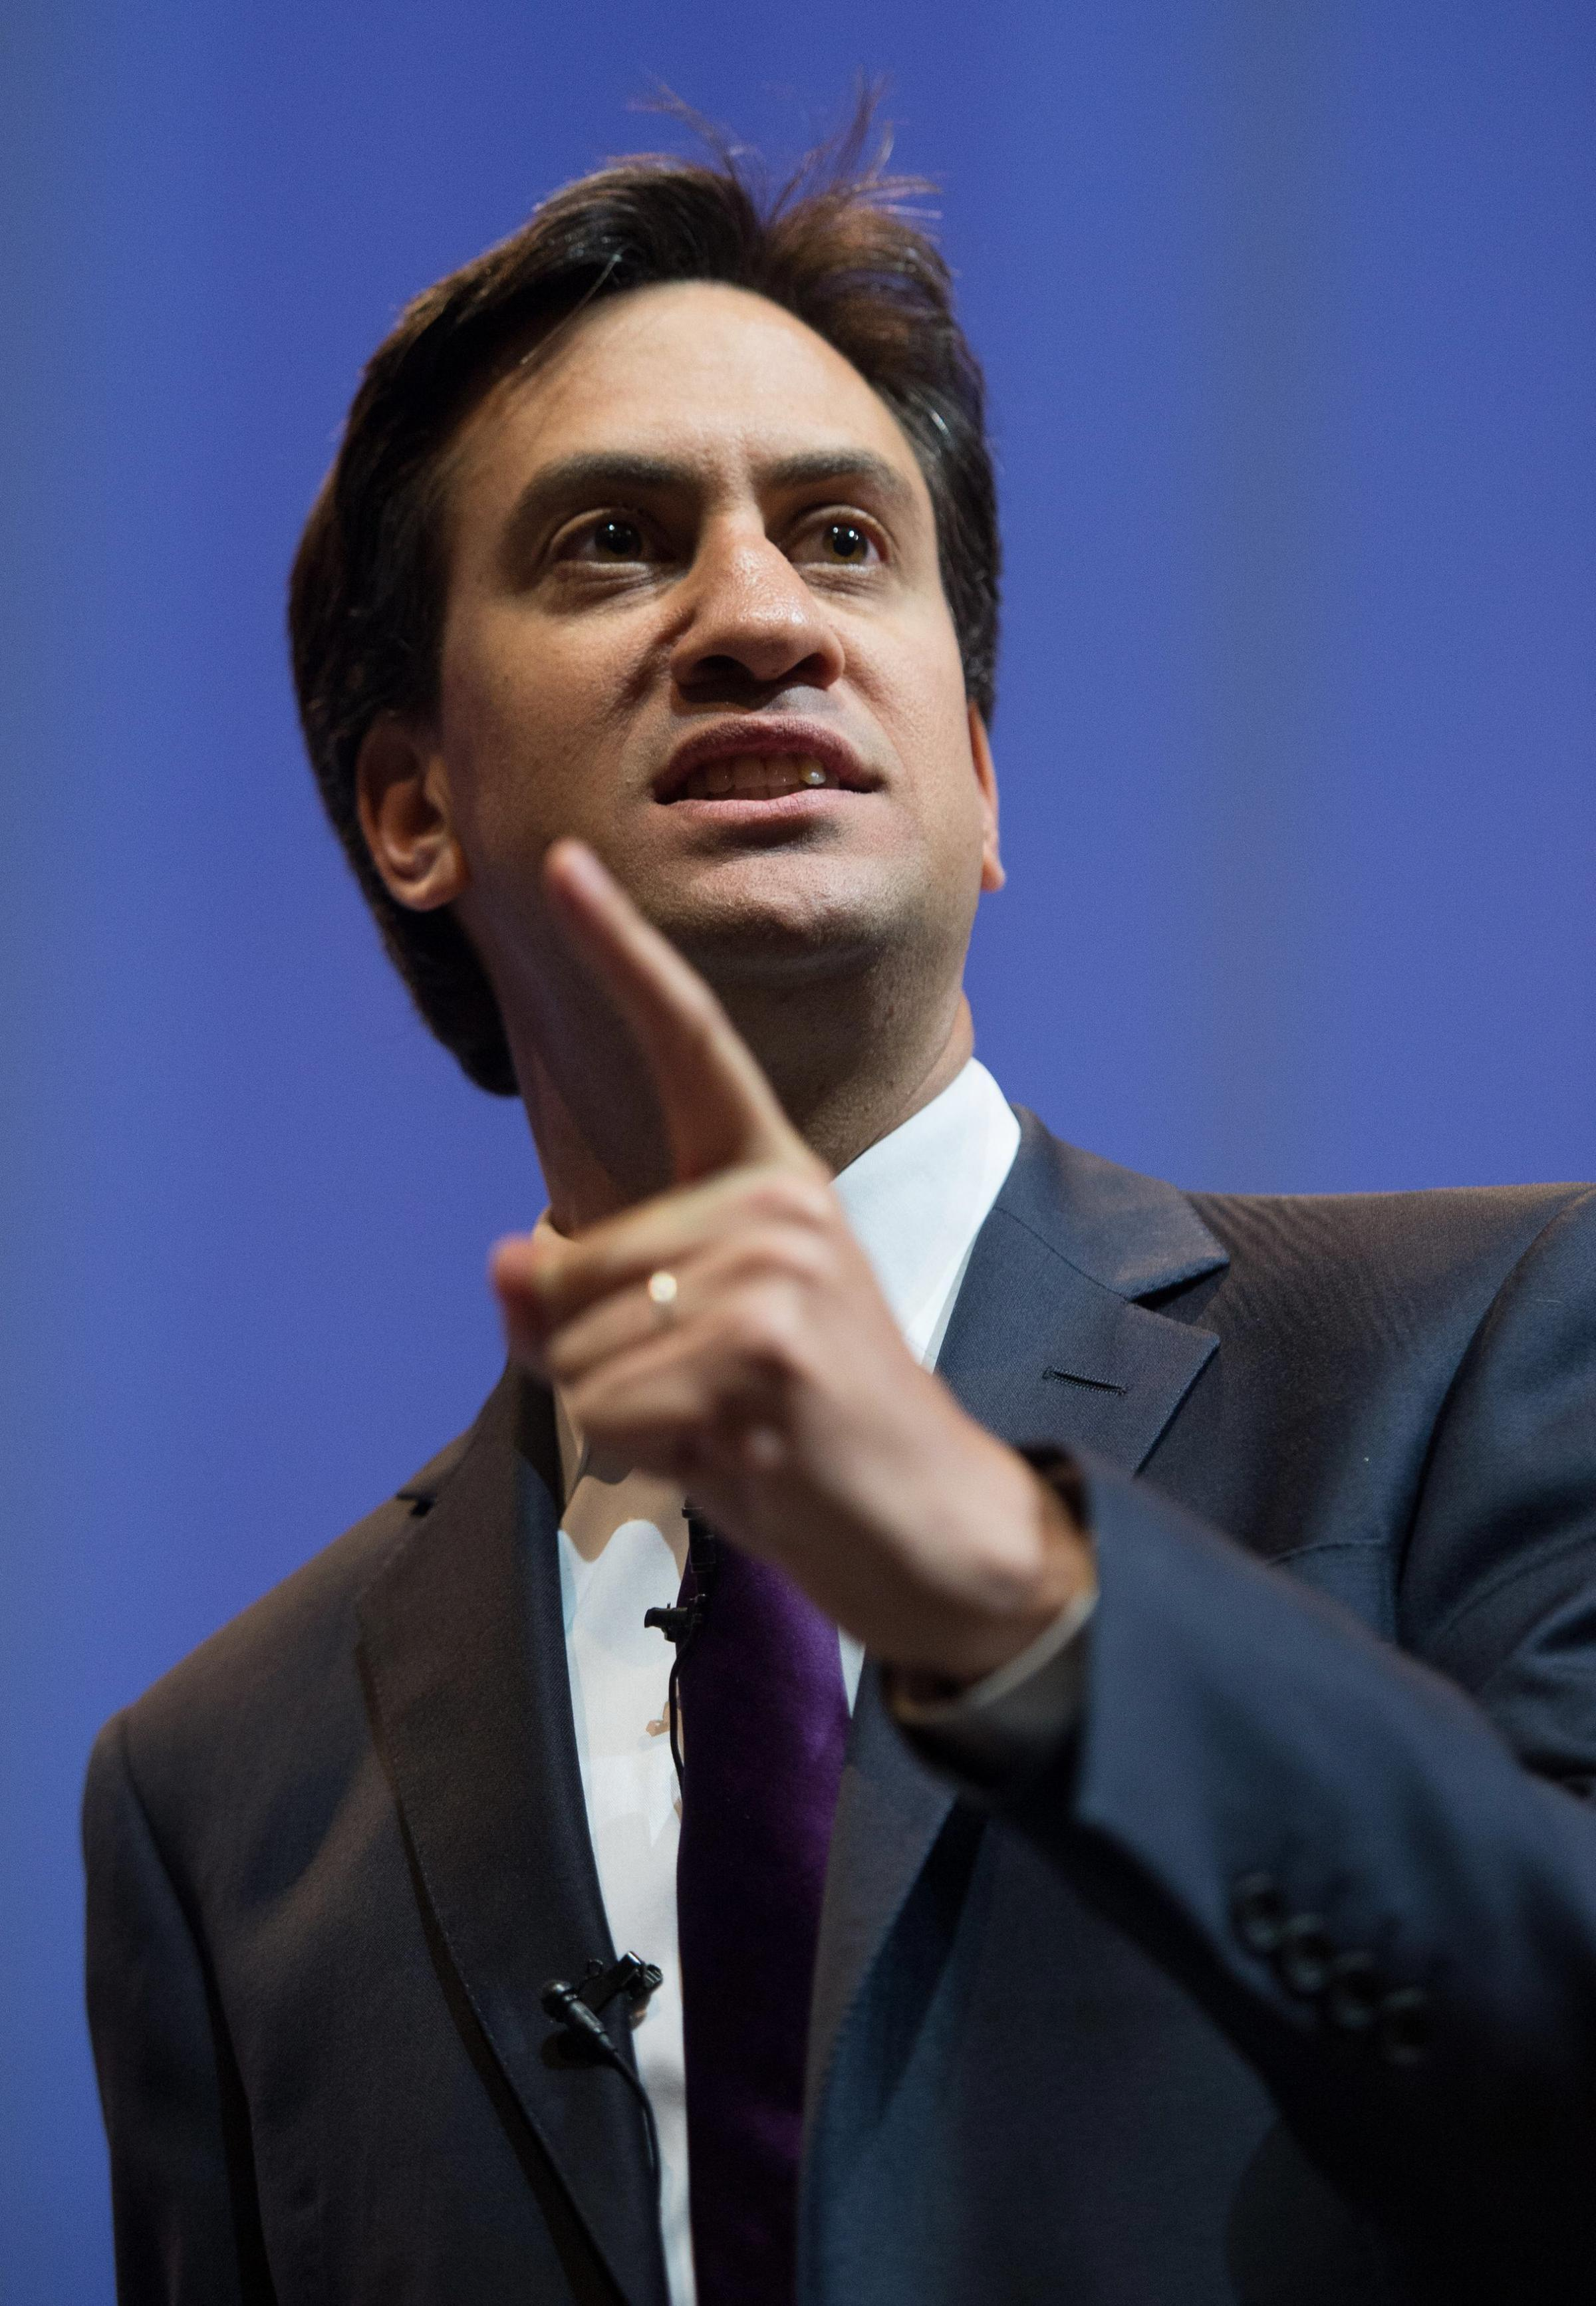 LIVING STANDARDS DOWN: Ed Miliband